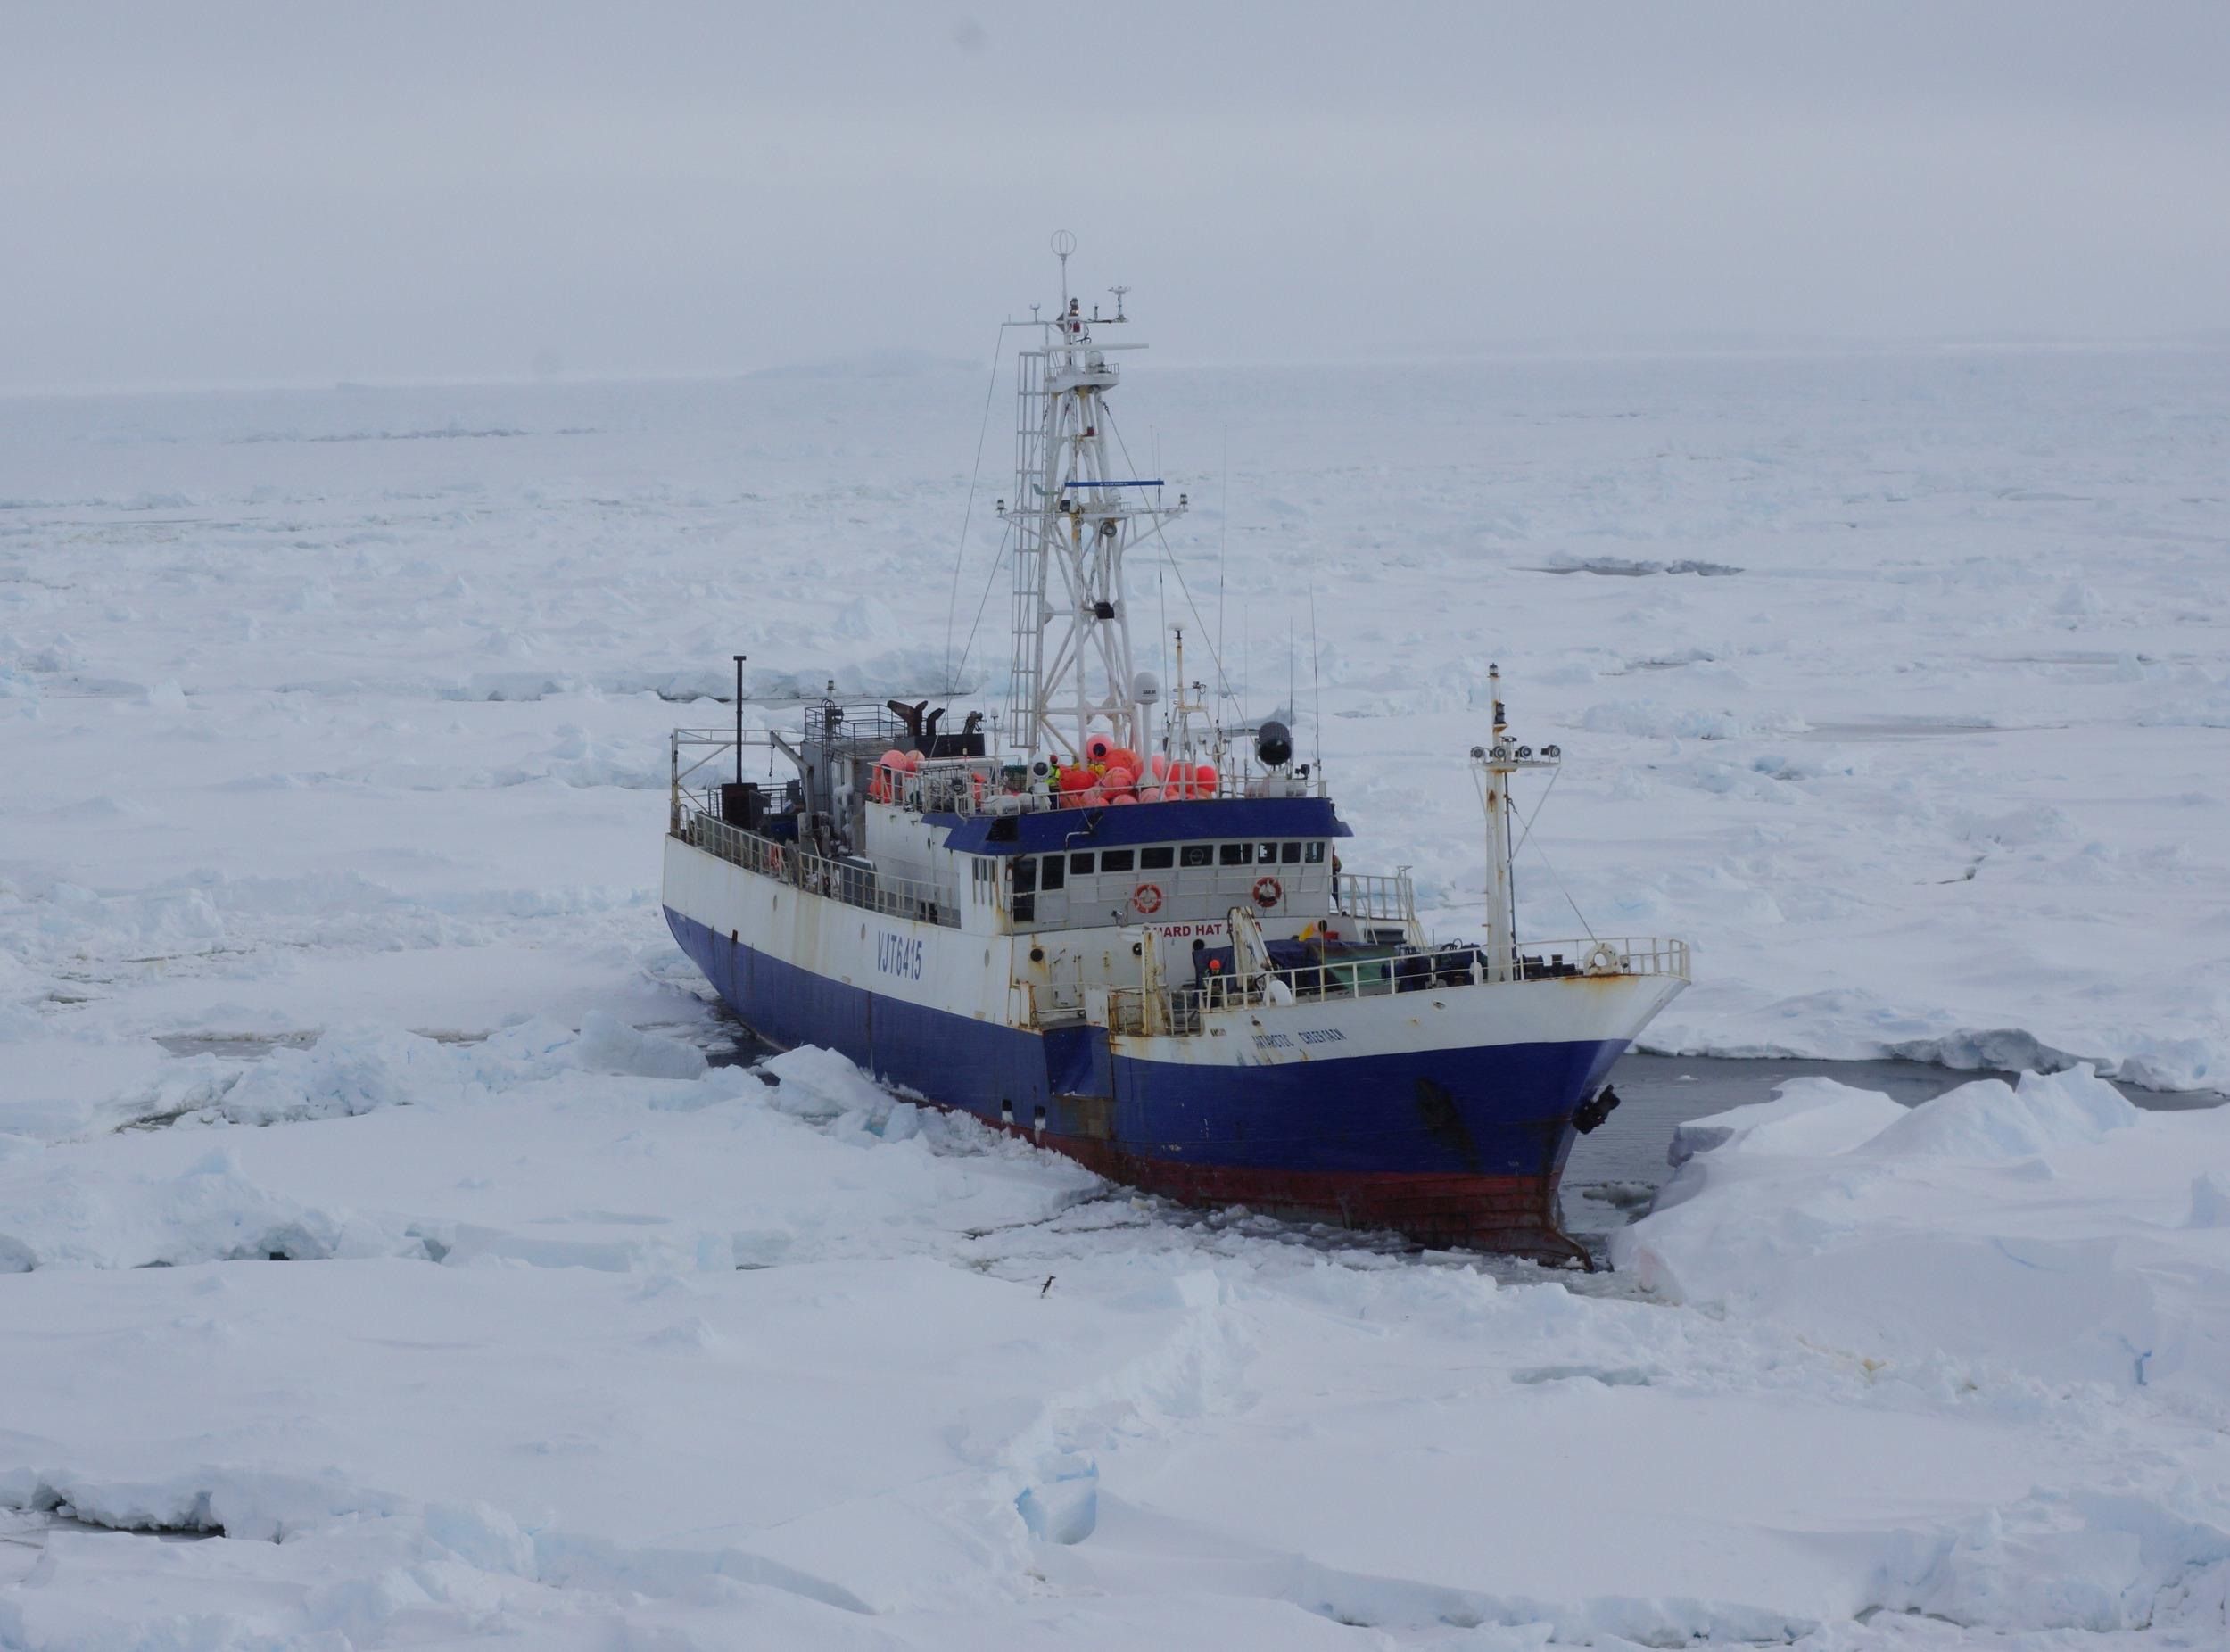 Us icebreaker polar star reaches boat trapped in ice near for Ice fishing near me